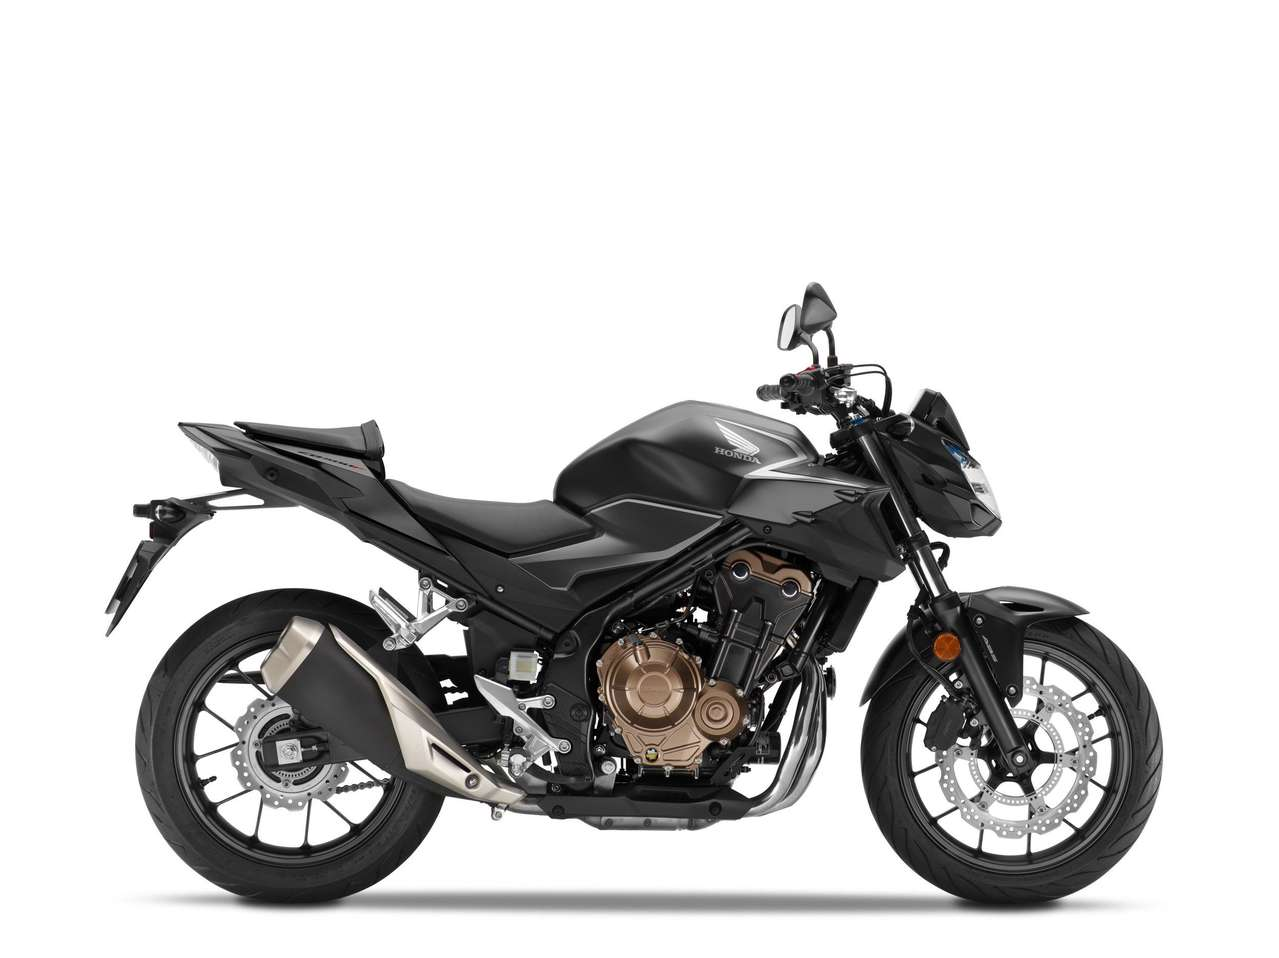 Honda CB500F 2021 - Matt Gunpowder Black Metallic